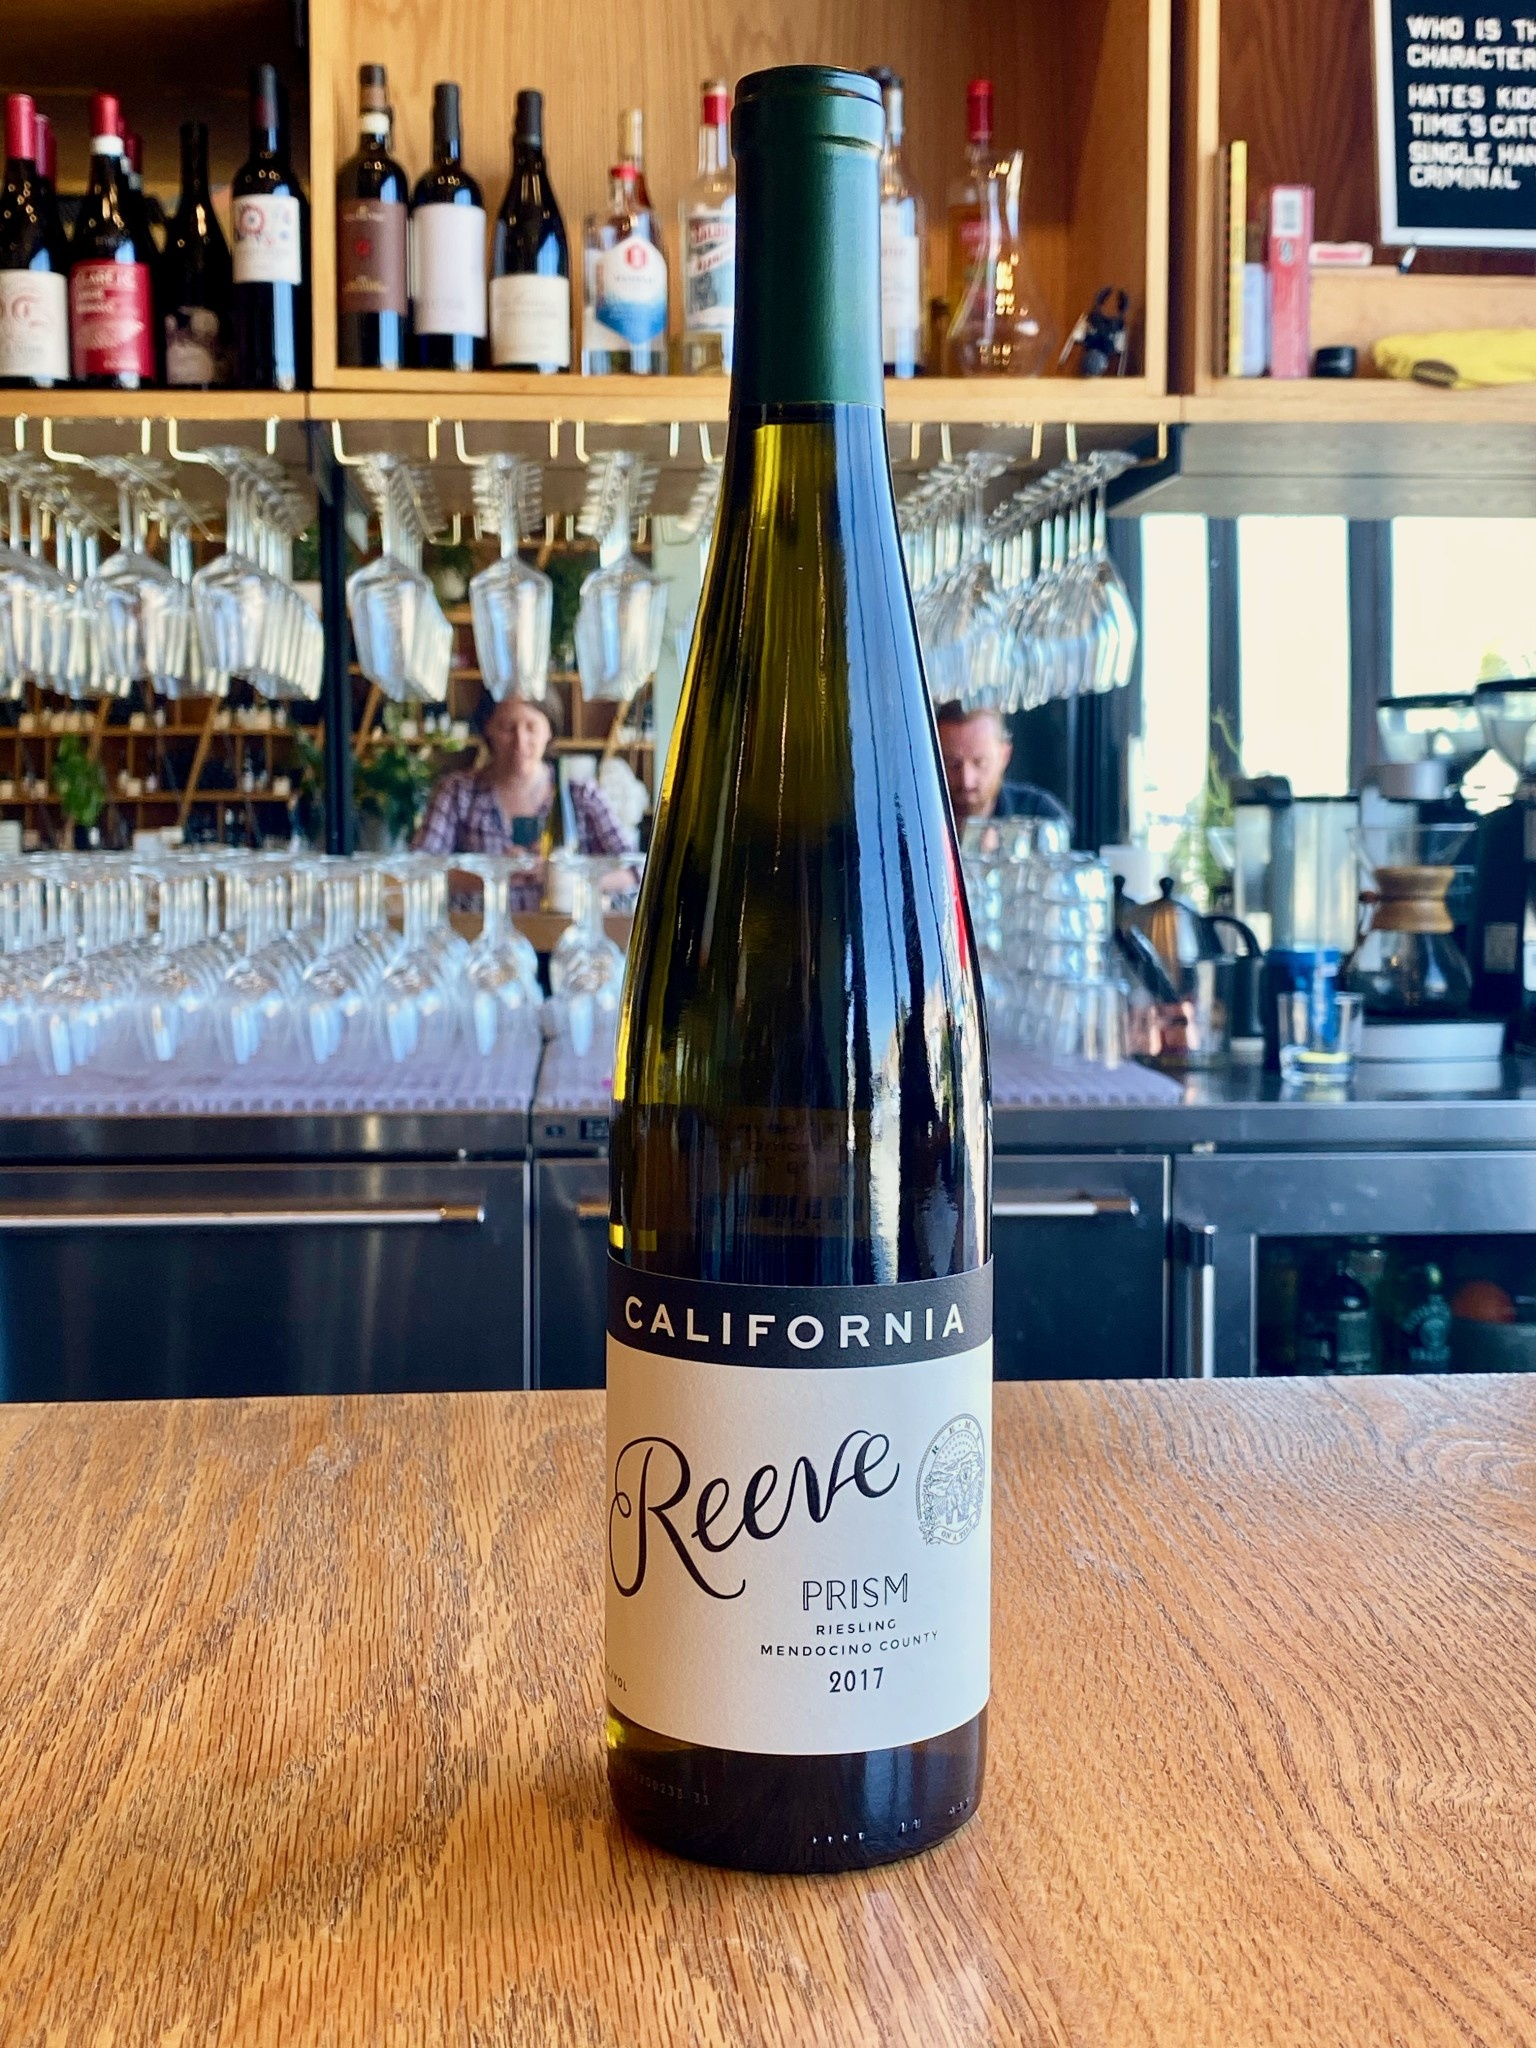 2017 Reeve 'Prism' Mendocino County Riesling 750ml